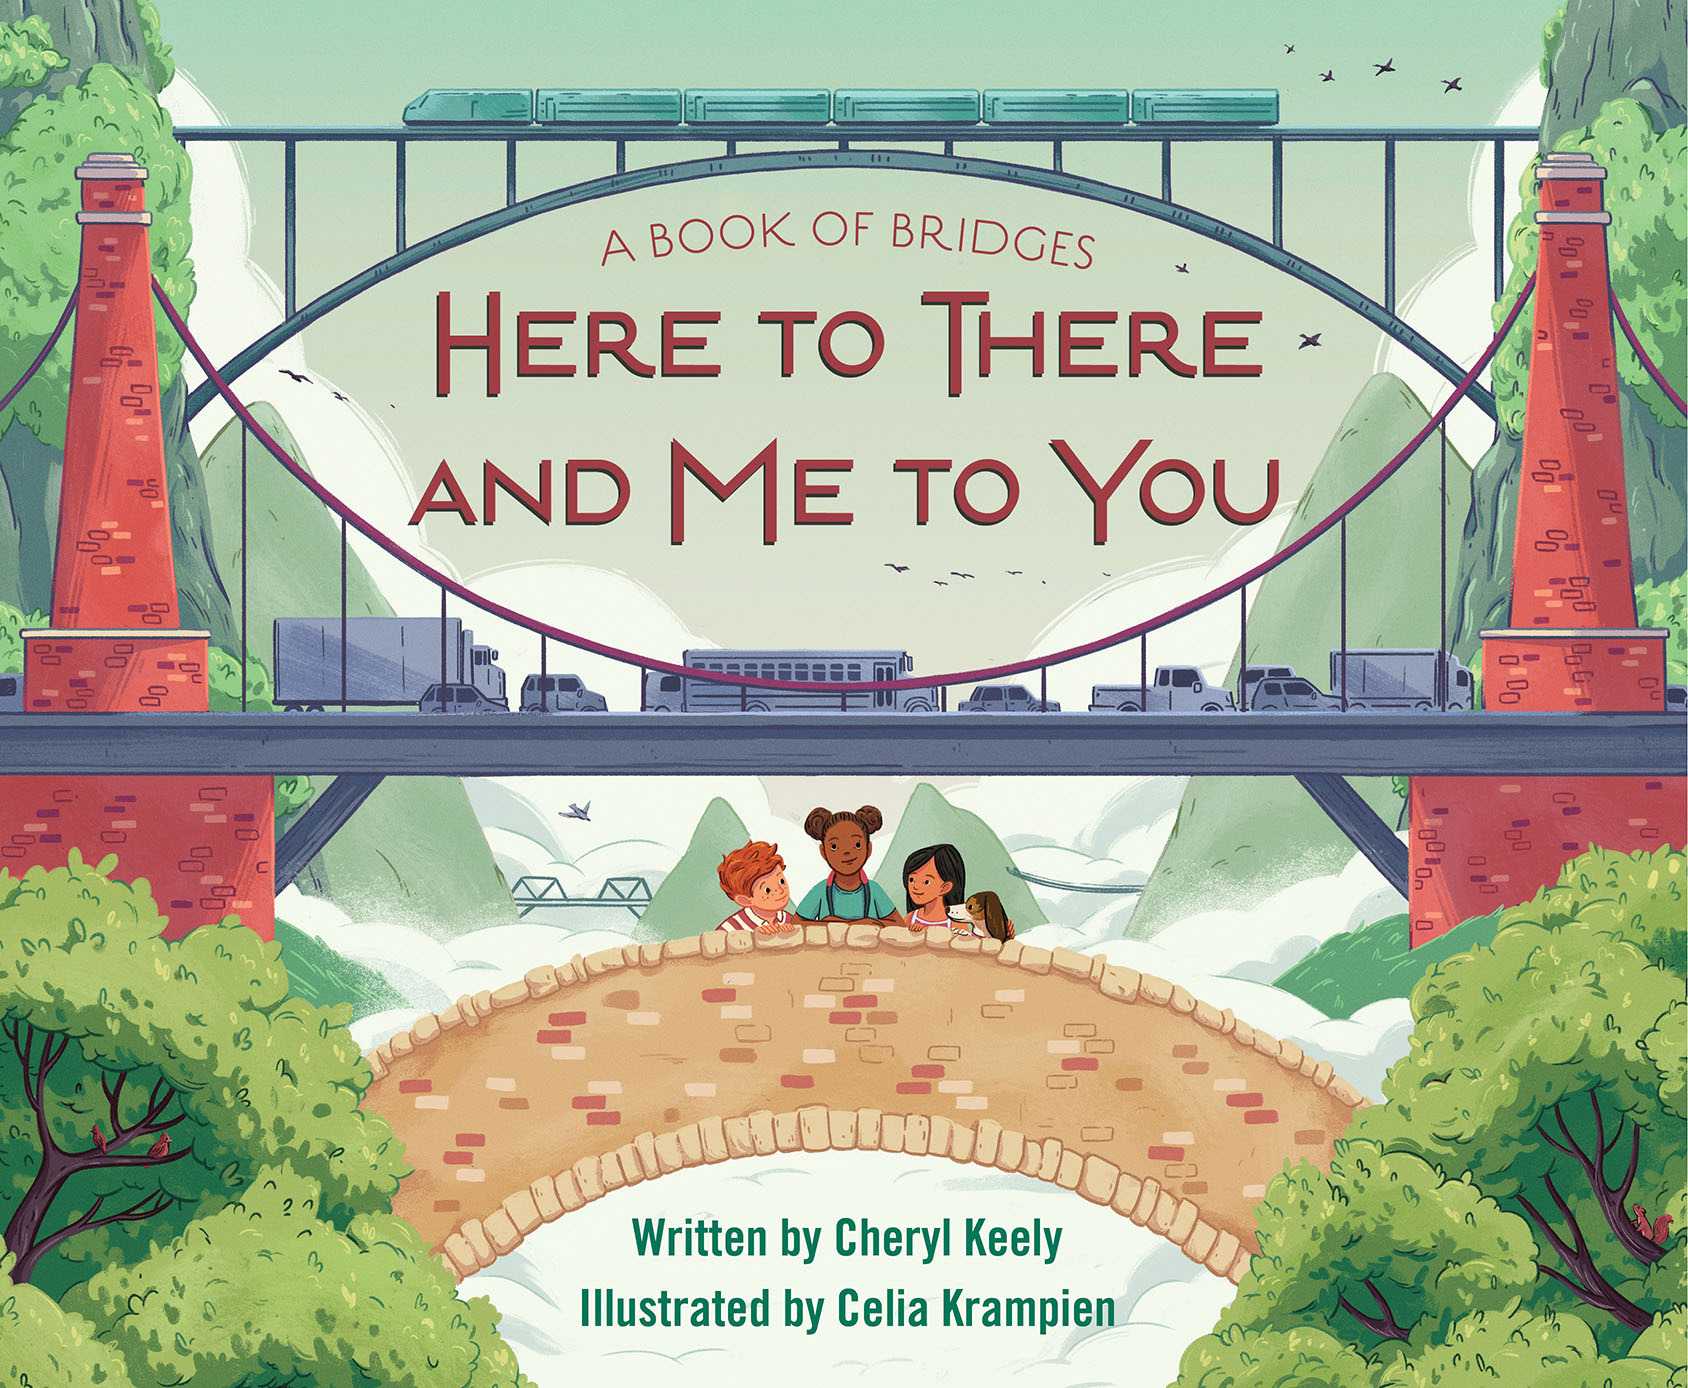 A Book of Bridges: Here To There and Me to You by Cheryl Keely